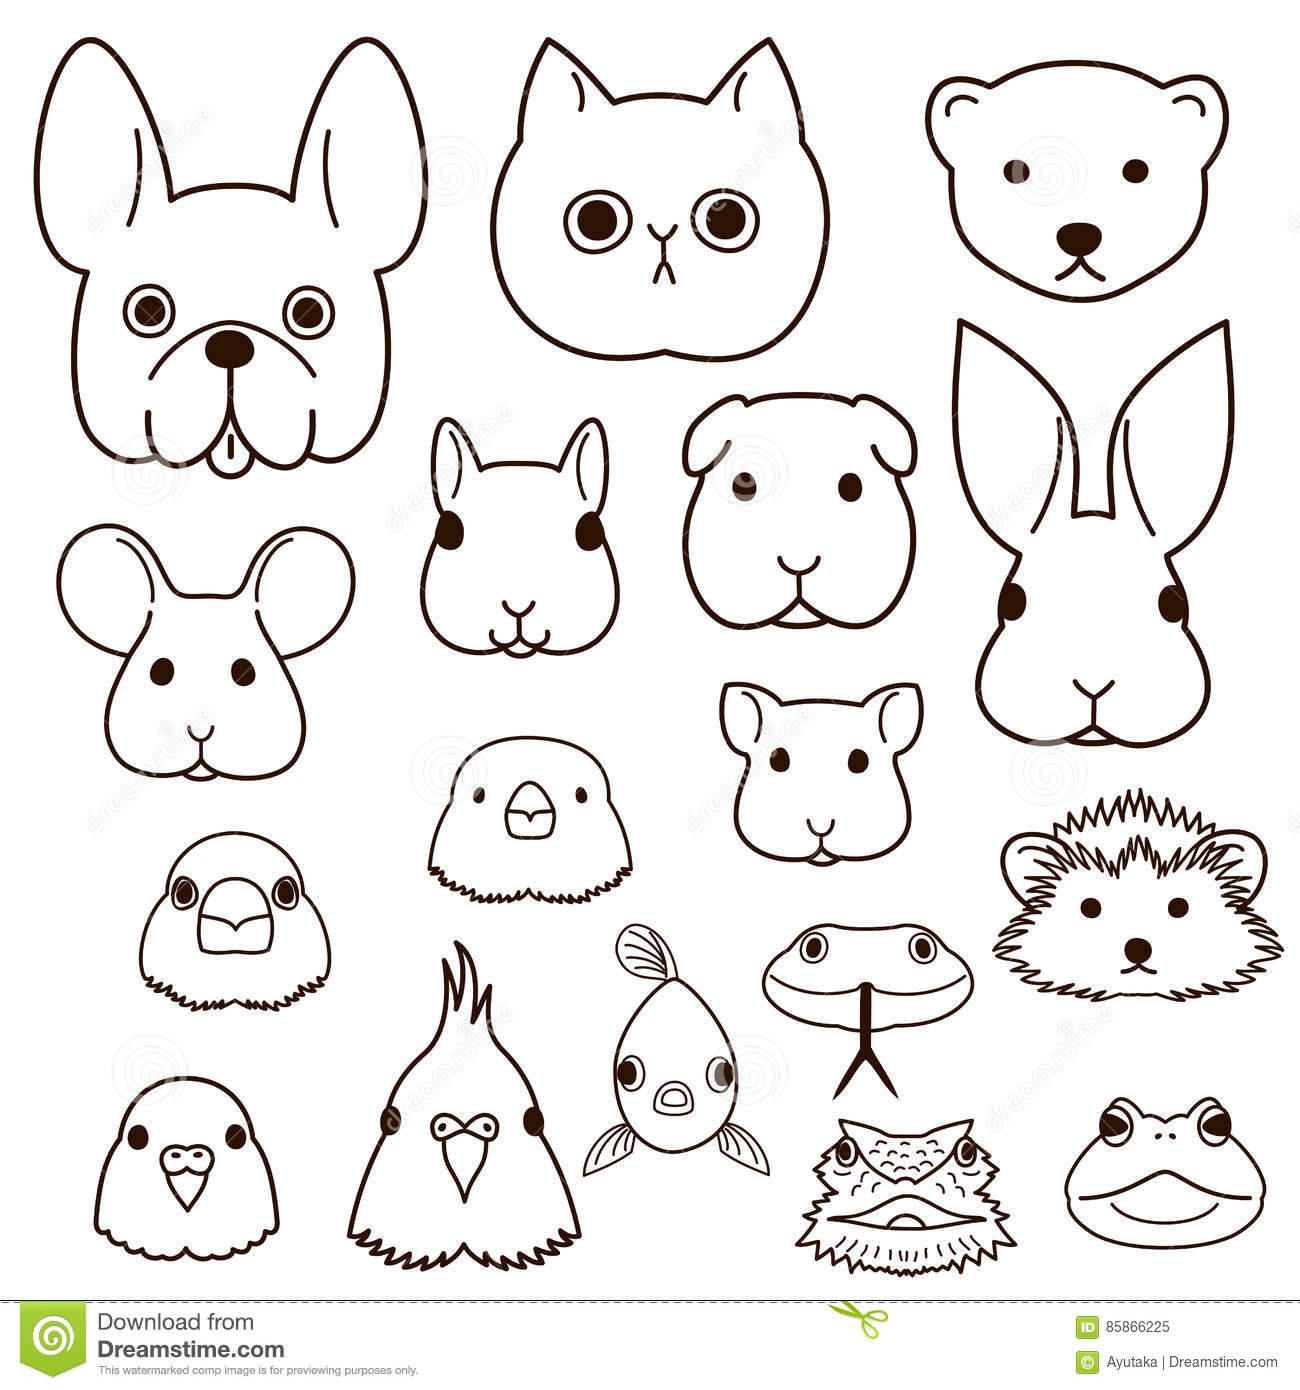 Line Drawings Of Cute Animals : Hamsters cartoons illustrations vector stock images